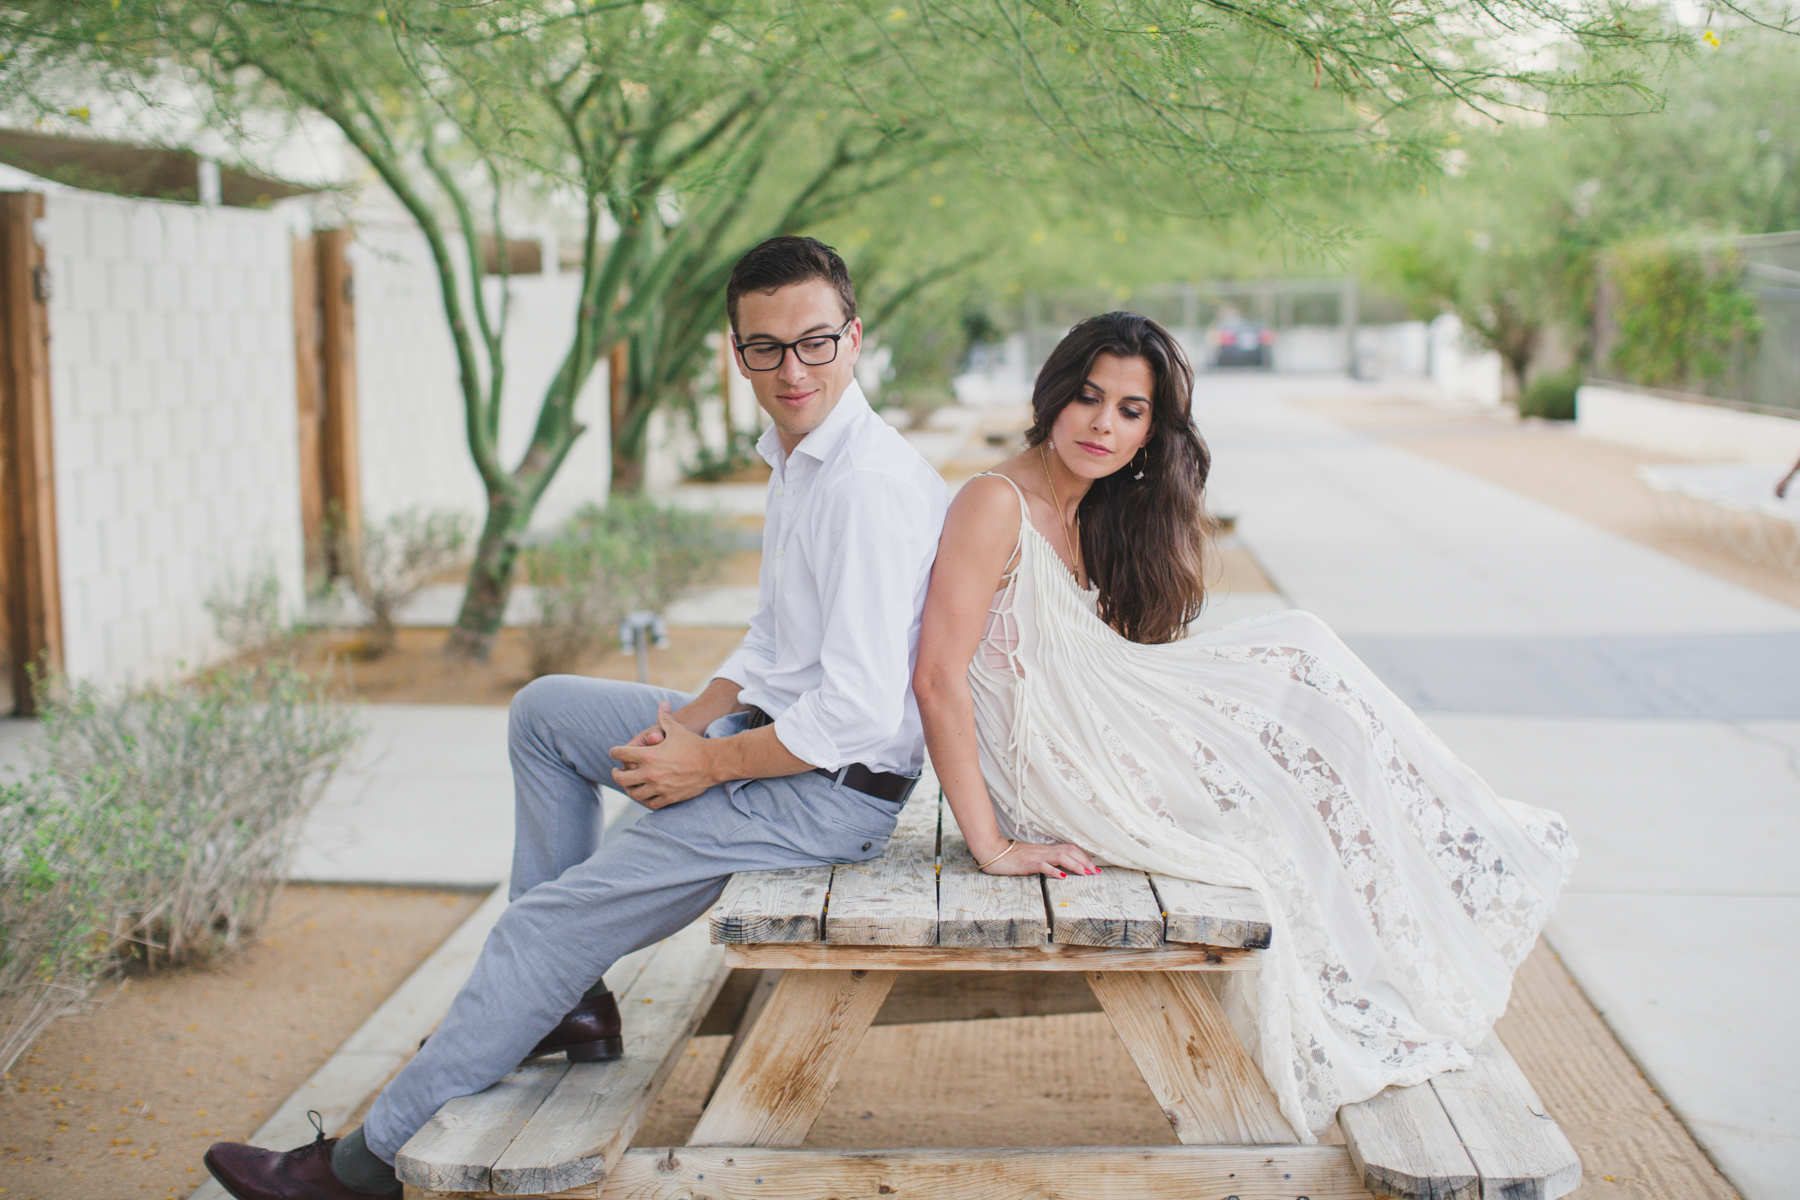 All_Days_Wonder_Palm_Springs_Engagement-64.jpg